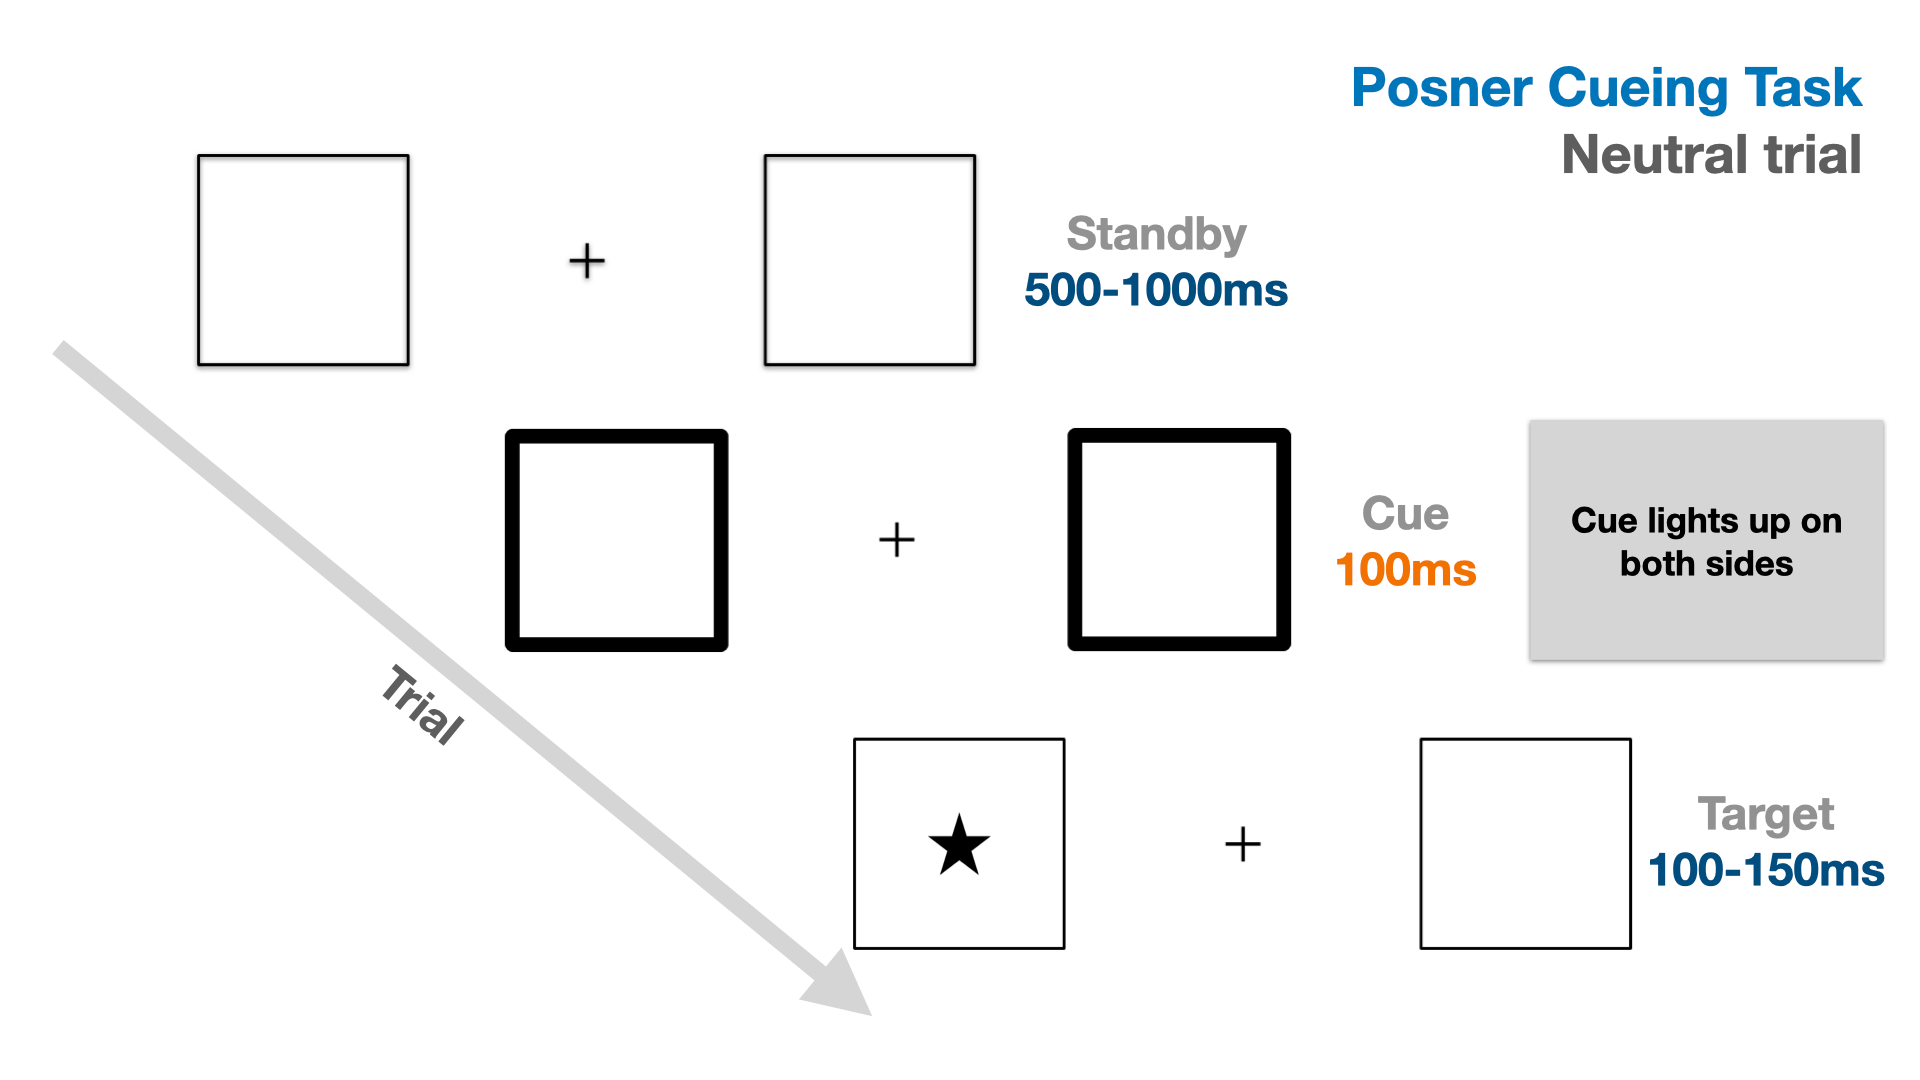 Illustration of the trial flow in a neutrally cued trial of the Posner cueing task